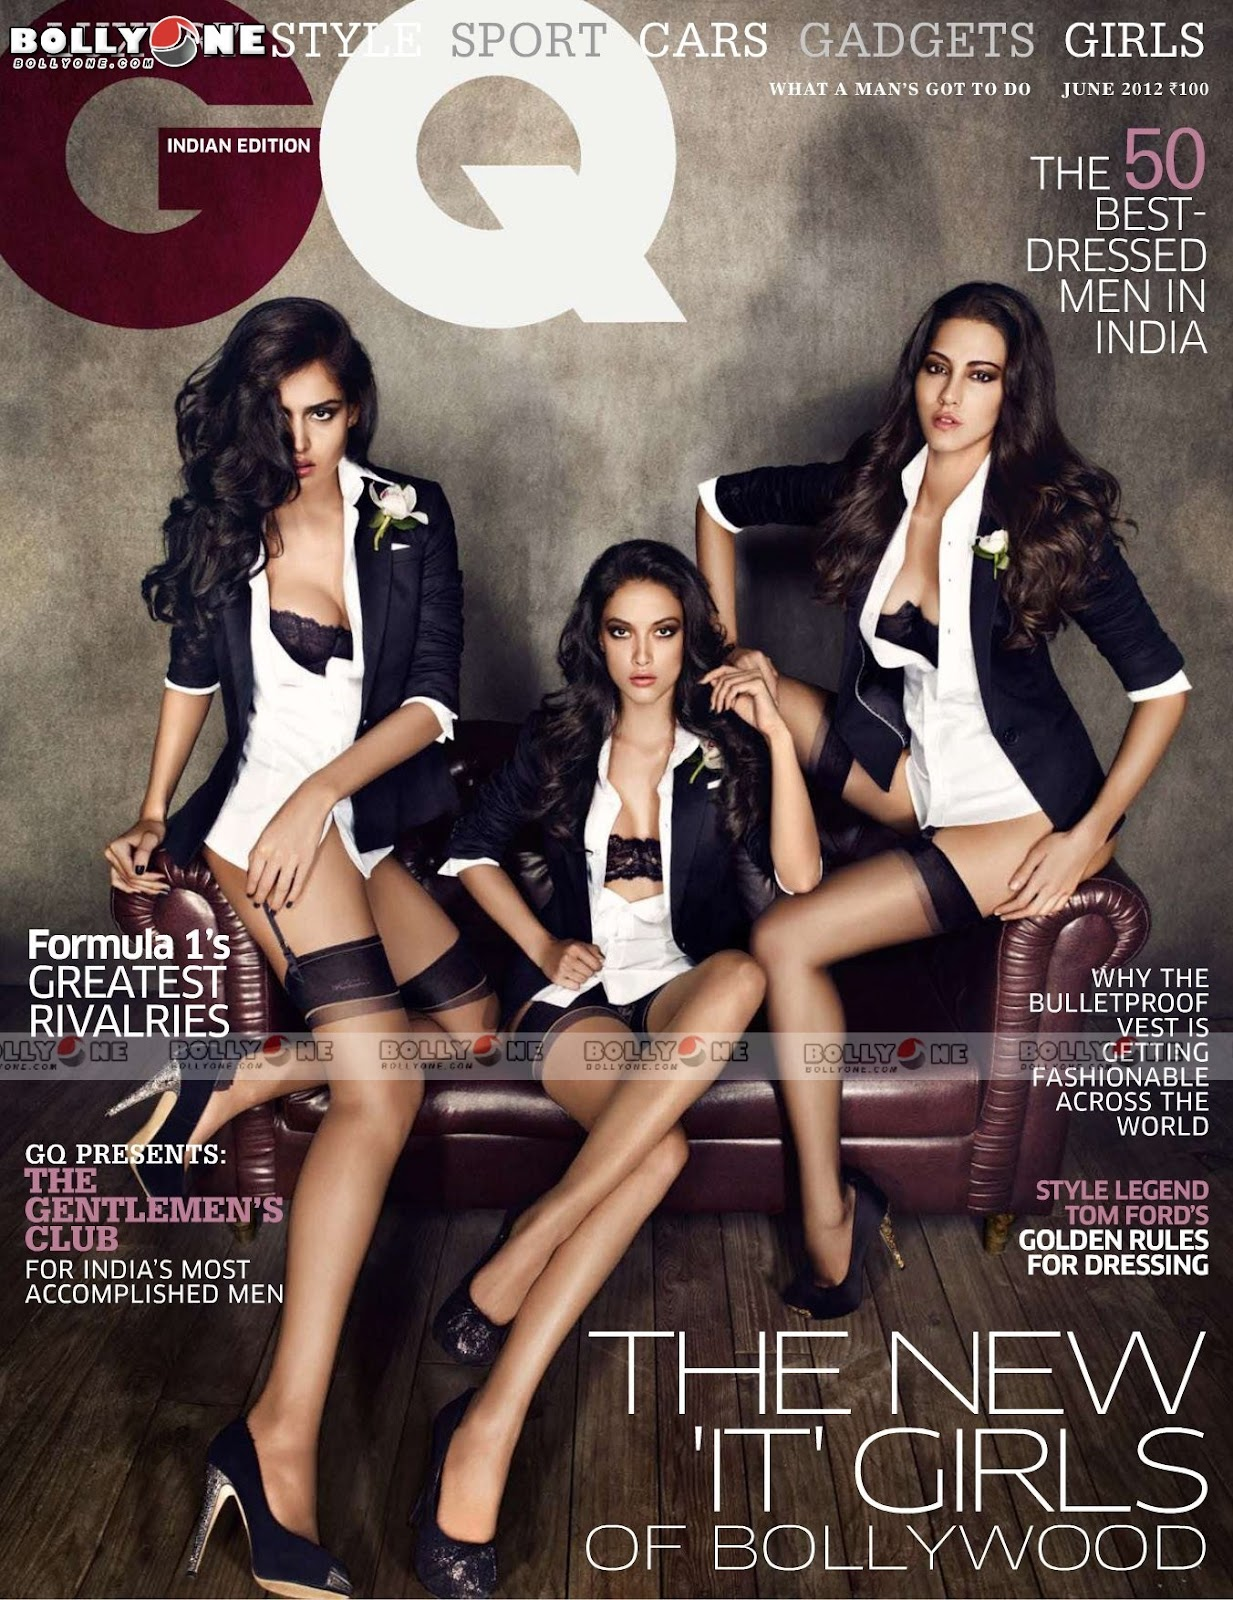 Nathalia kaur, malika haydon, and angela jonsson posing in black and  white on lmarron leather couch - Nathalia Kaur, Malika Haydon, and Angela Jonsson- GQ INDIA JUNE 2012